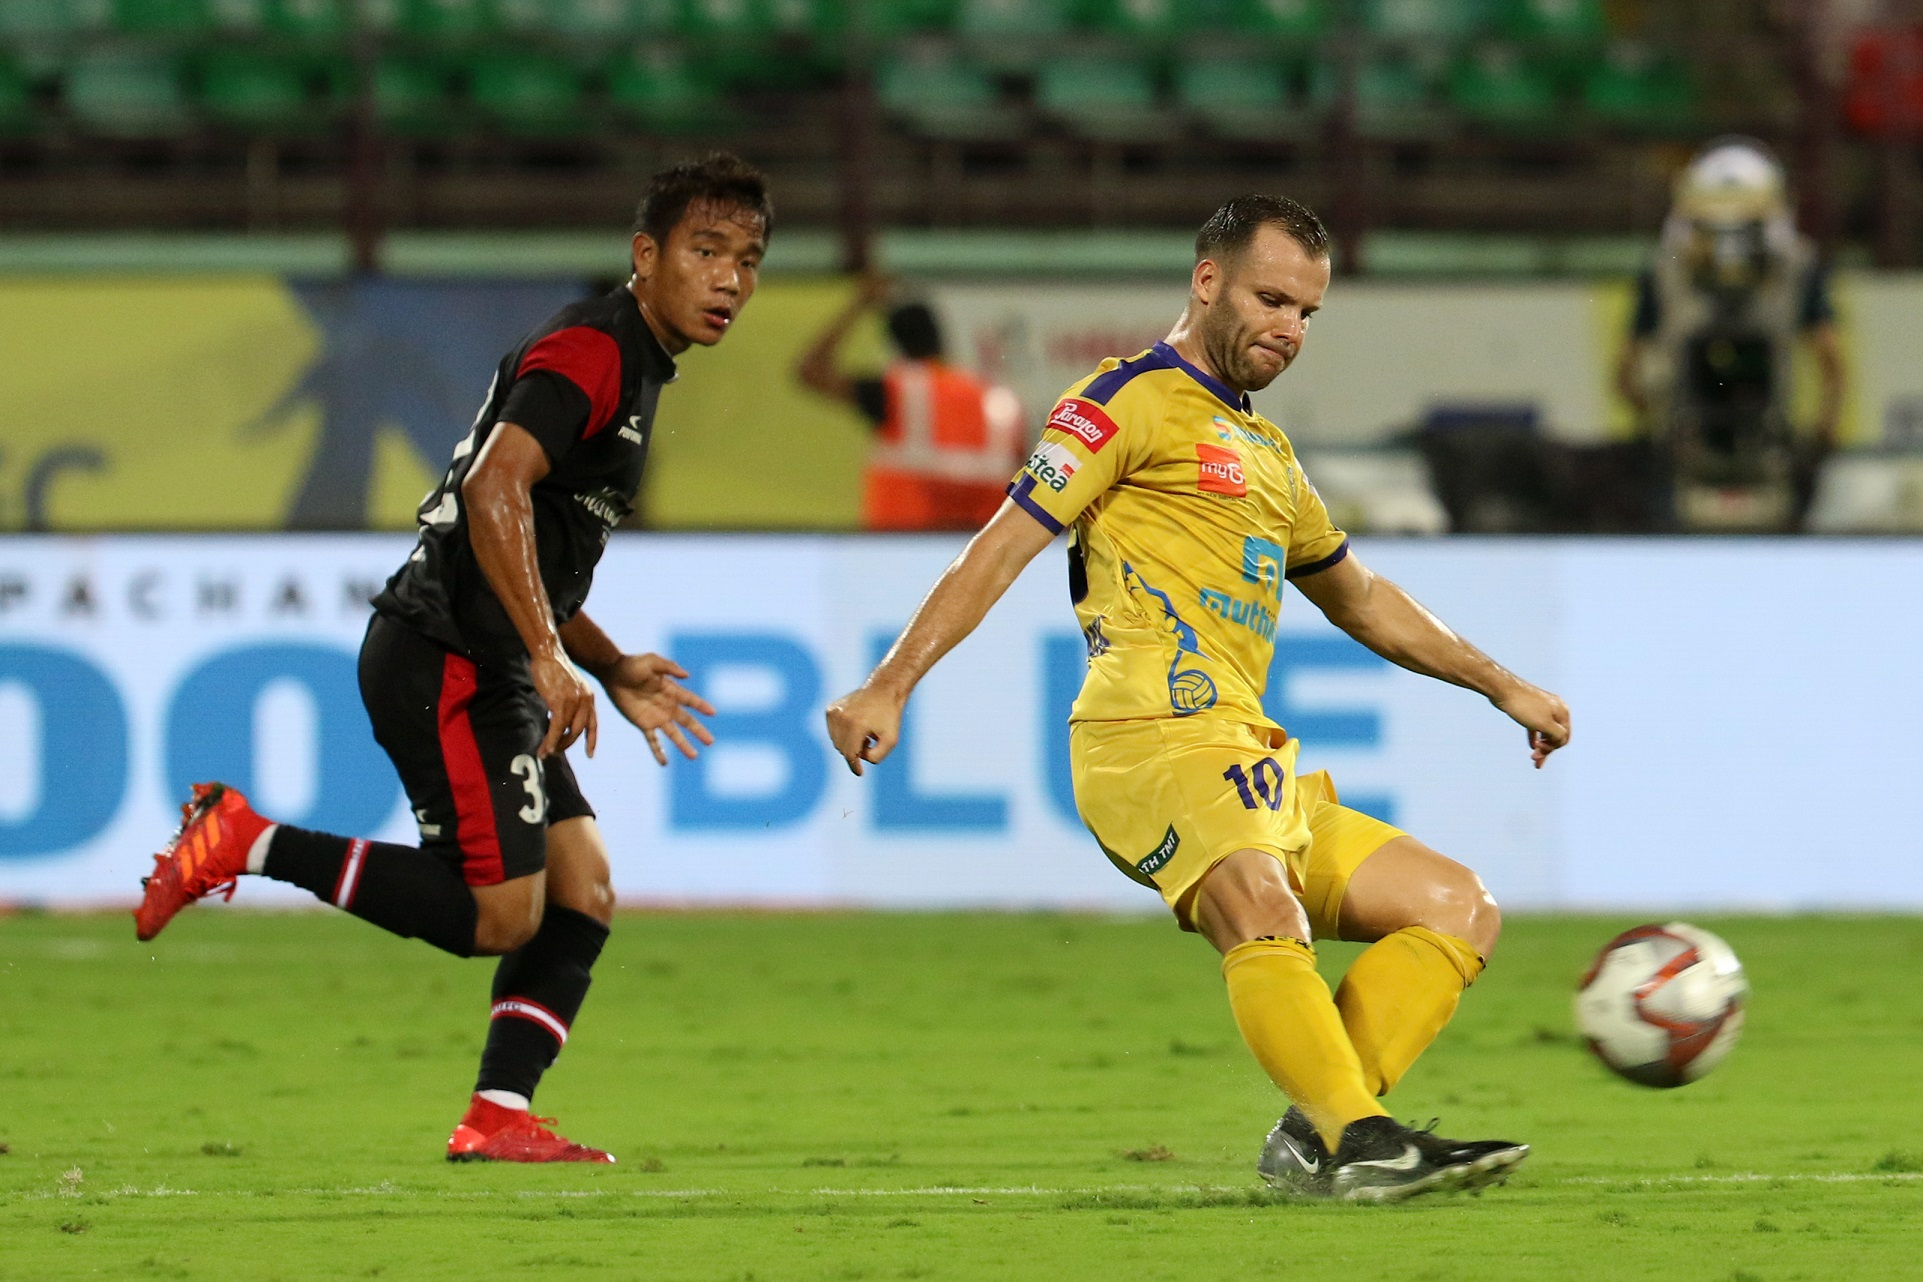 Kerala Blasters vs NorthEast United